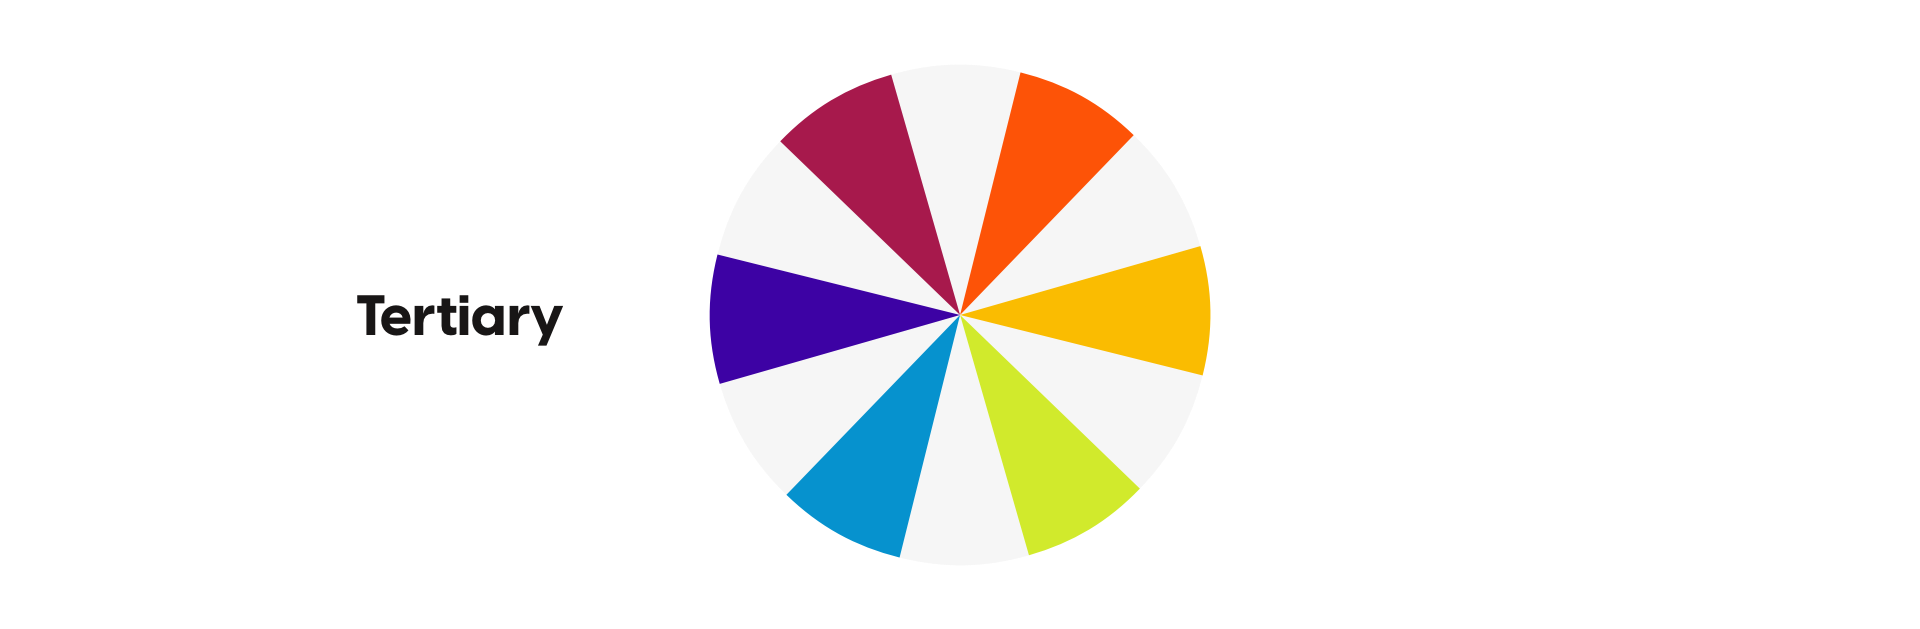 Picture of tertiary colors